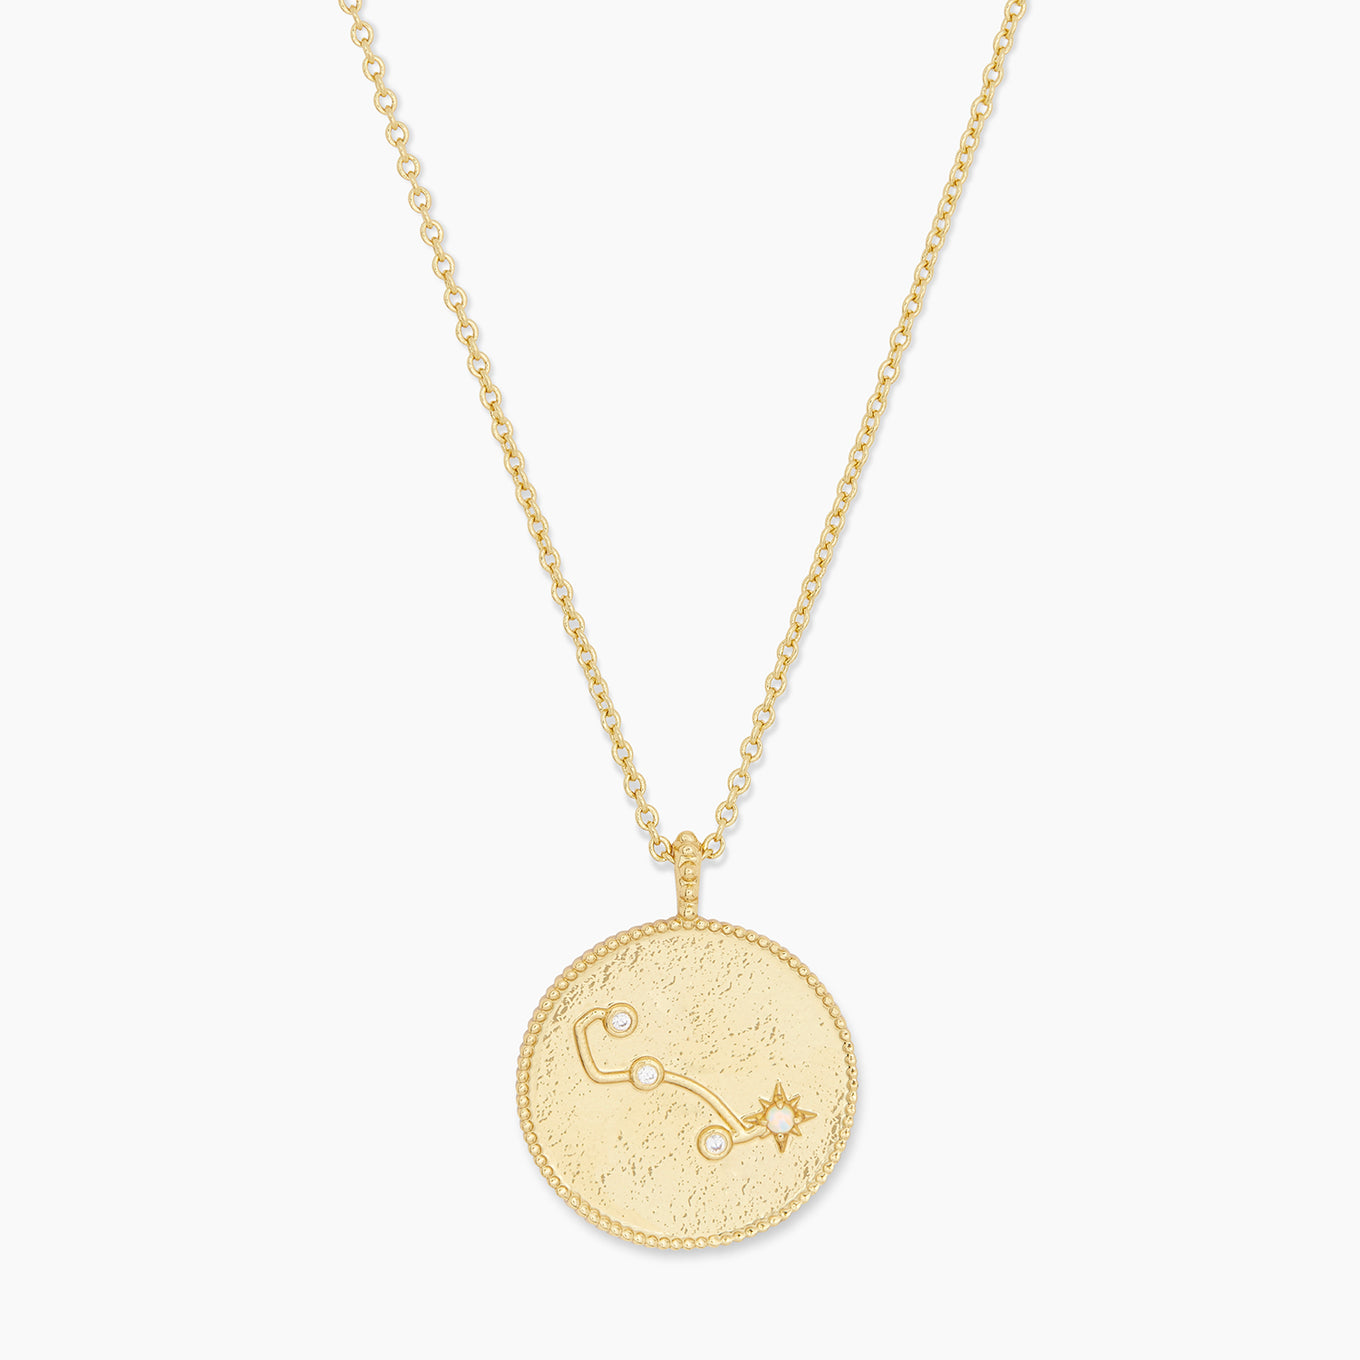 Astrology Coin Necklace (Scorpio)